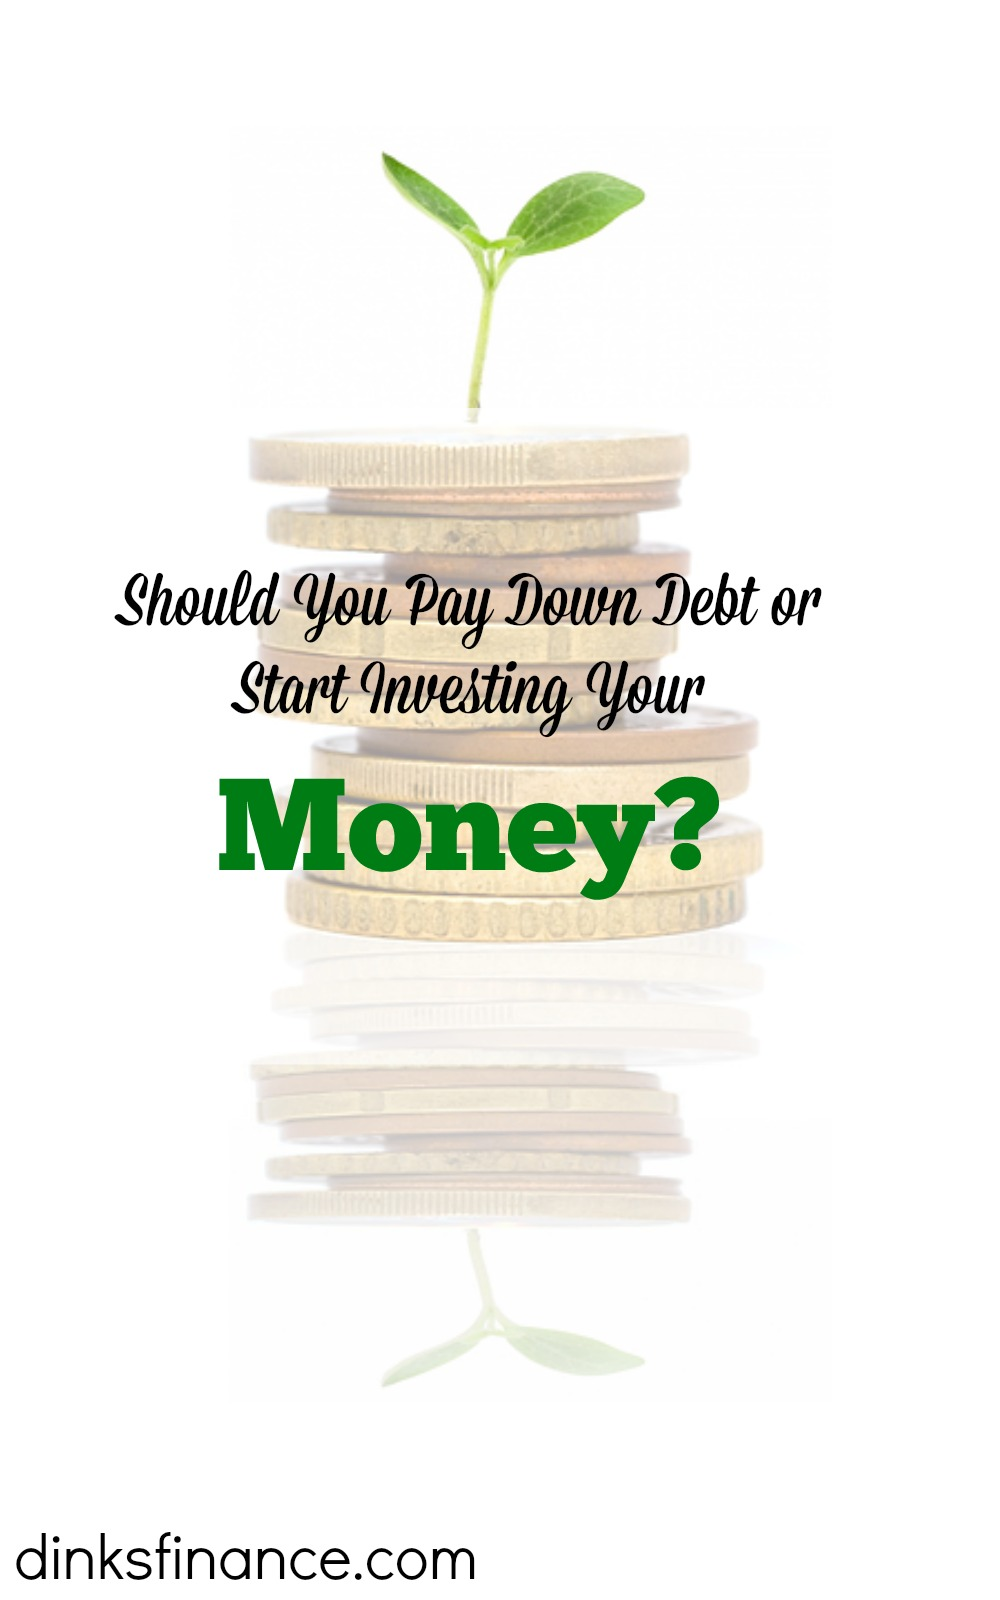 paying down debt, investing money, financial advice